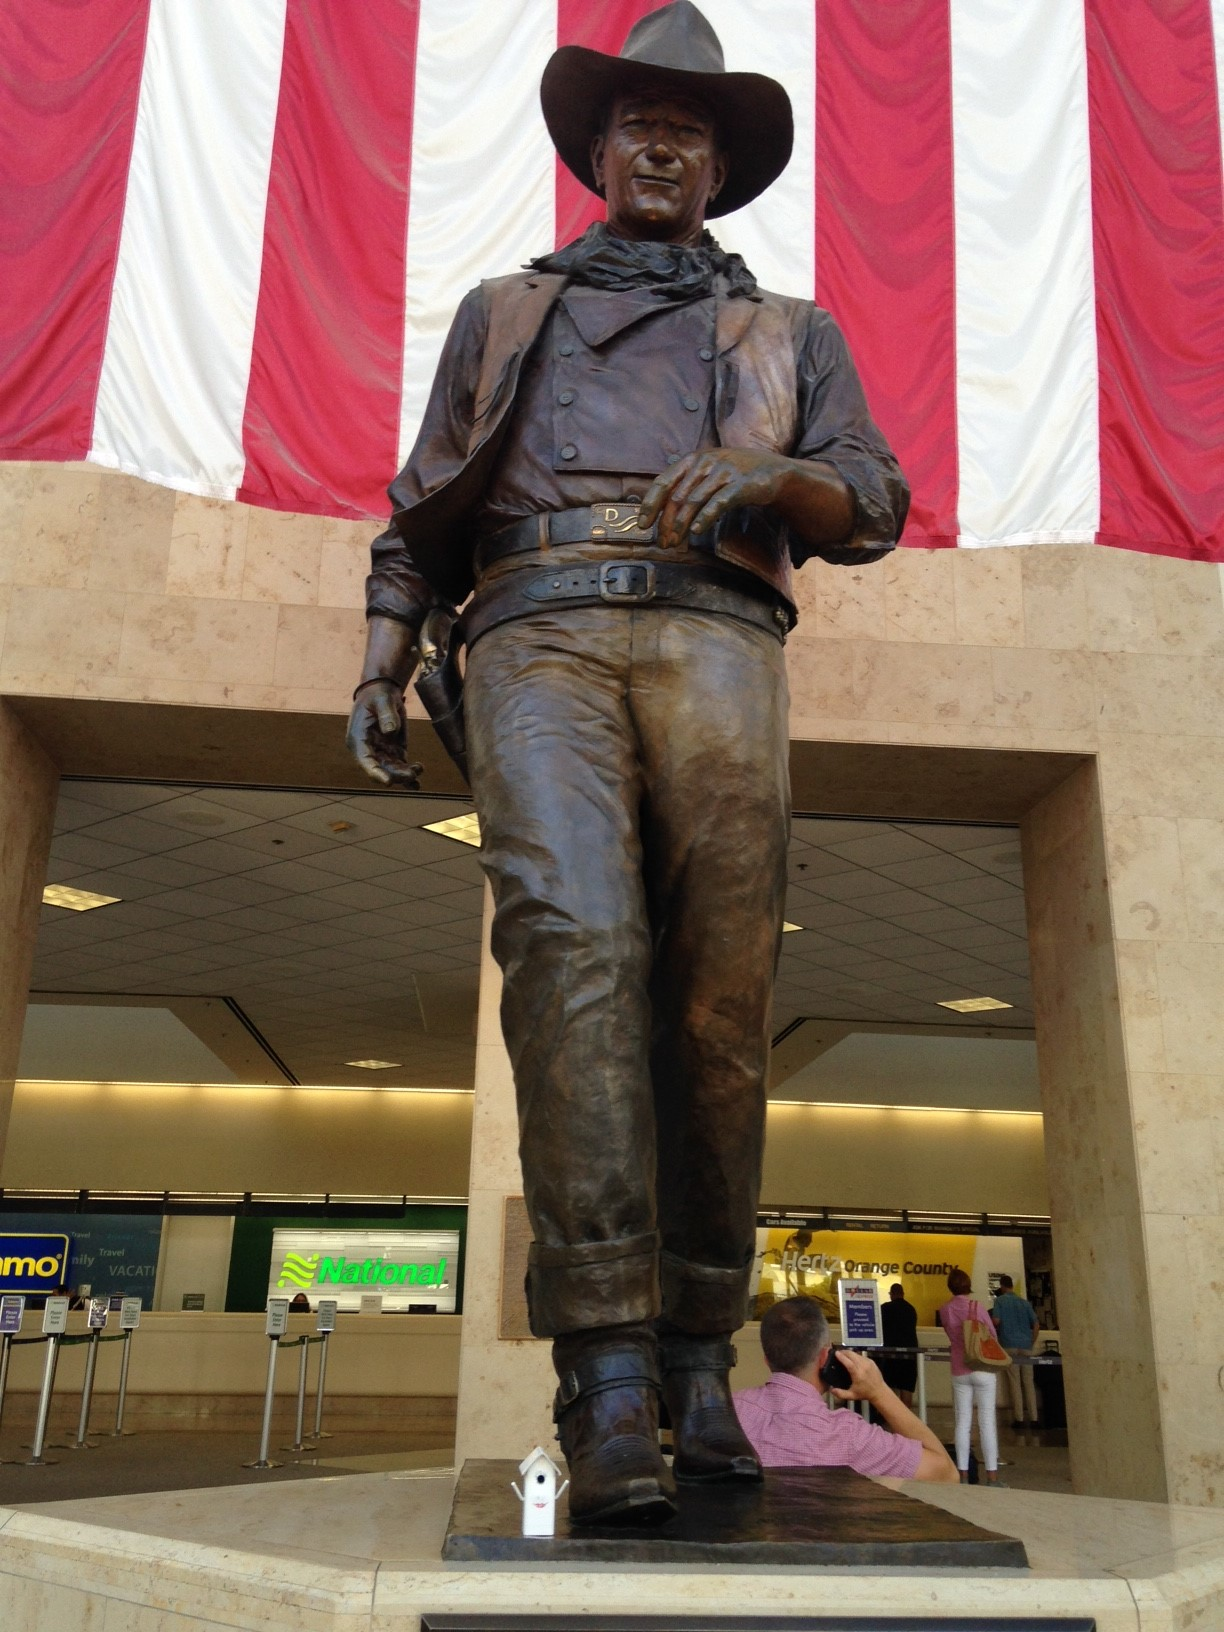 Polly meets John Wayne in Santa Anna Airport in California